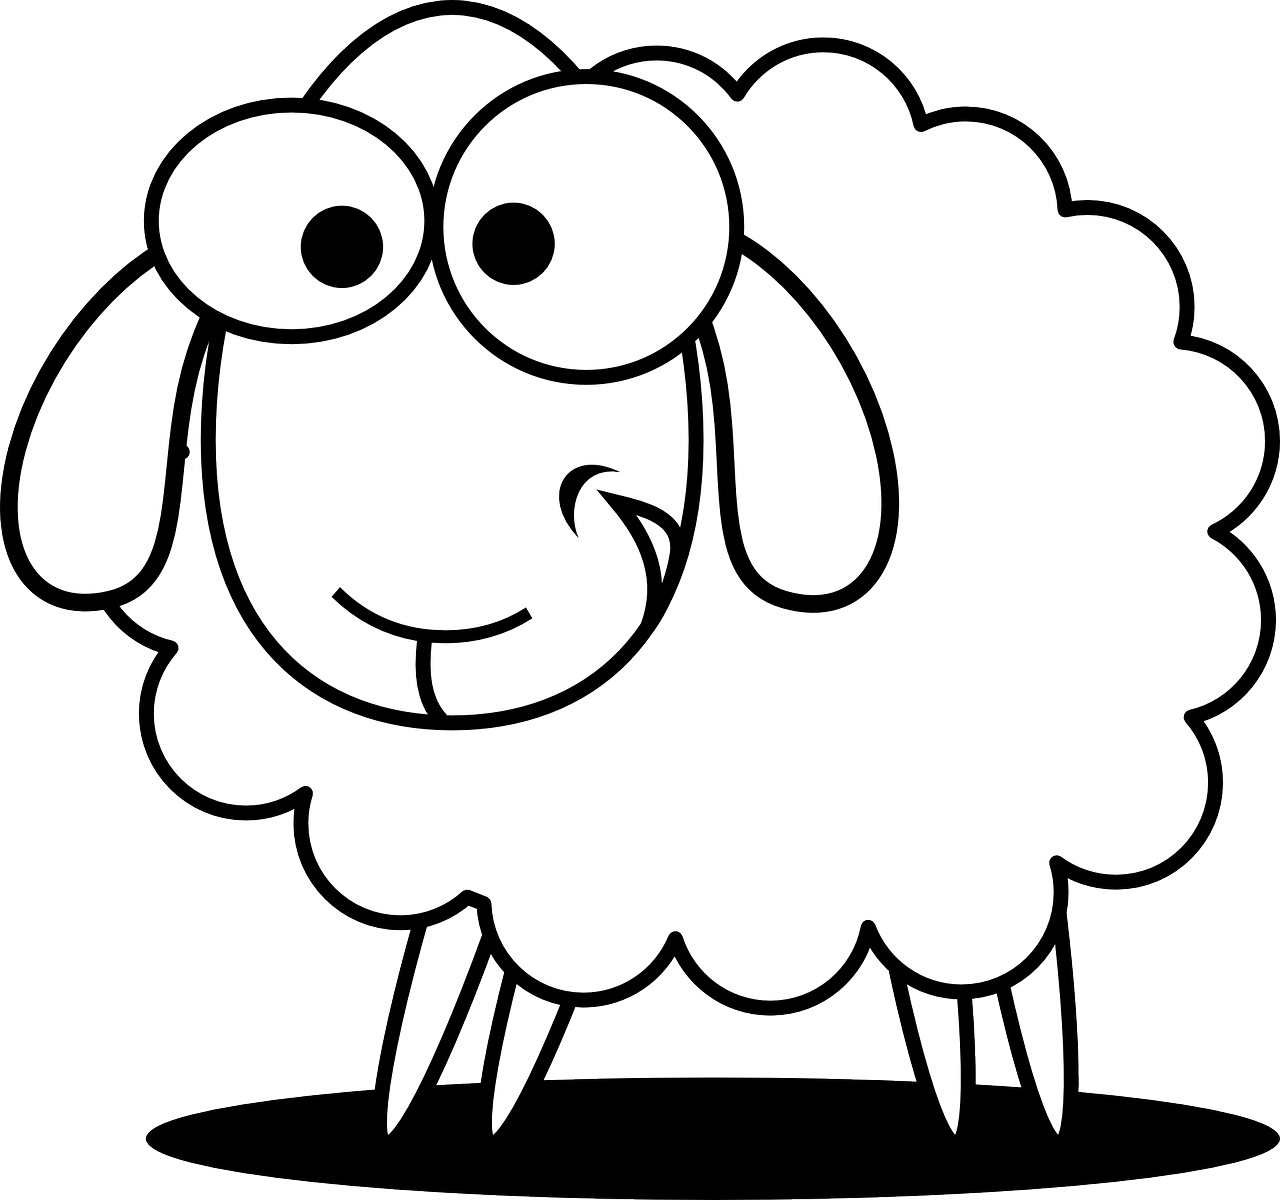 Turkey as a sheep clipart svg black and white Free Image on Pixabay - Sheep, Animal, Farm, Agriculture | Pinterest ... svg black and white